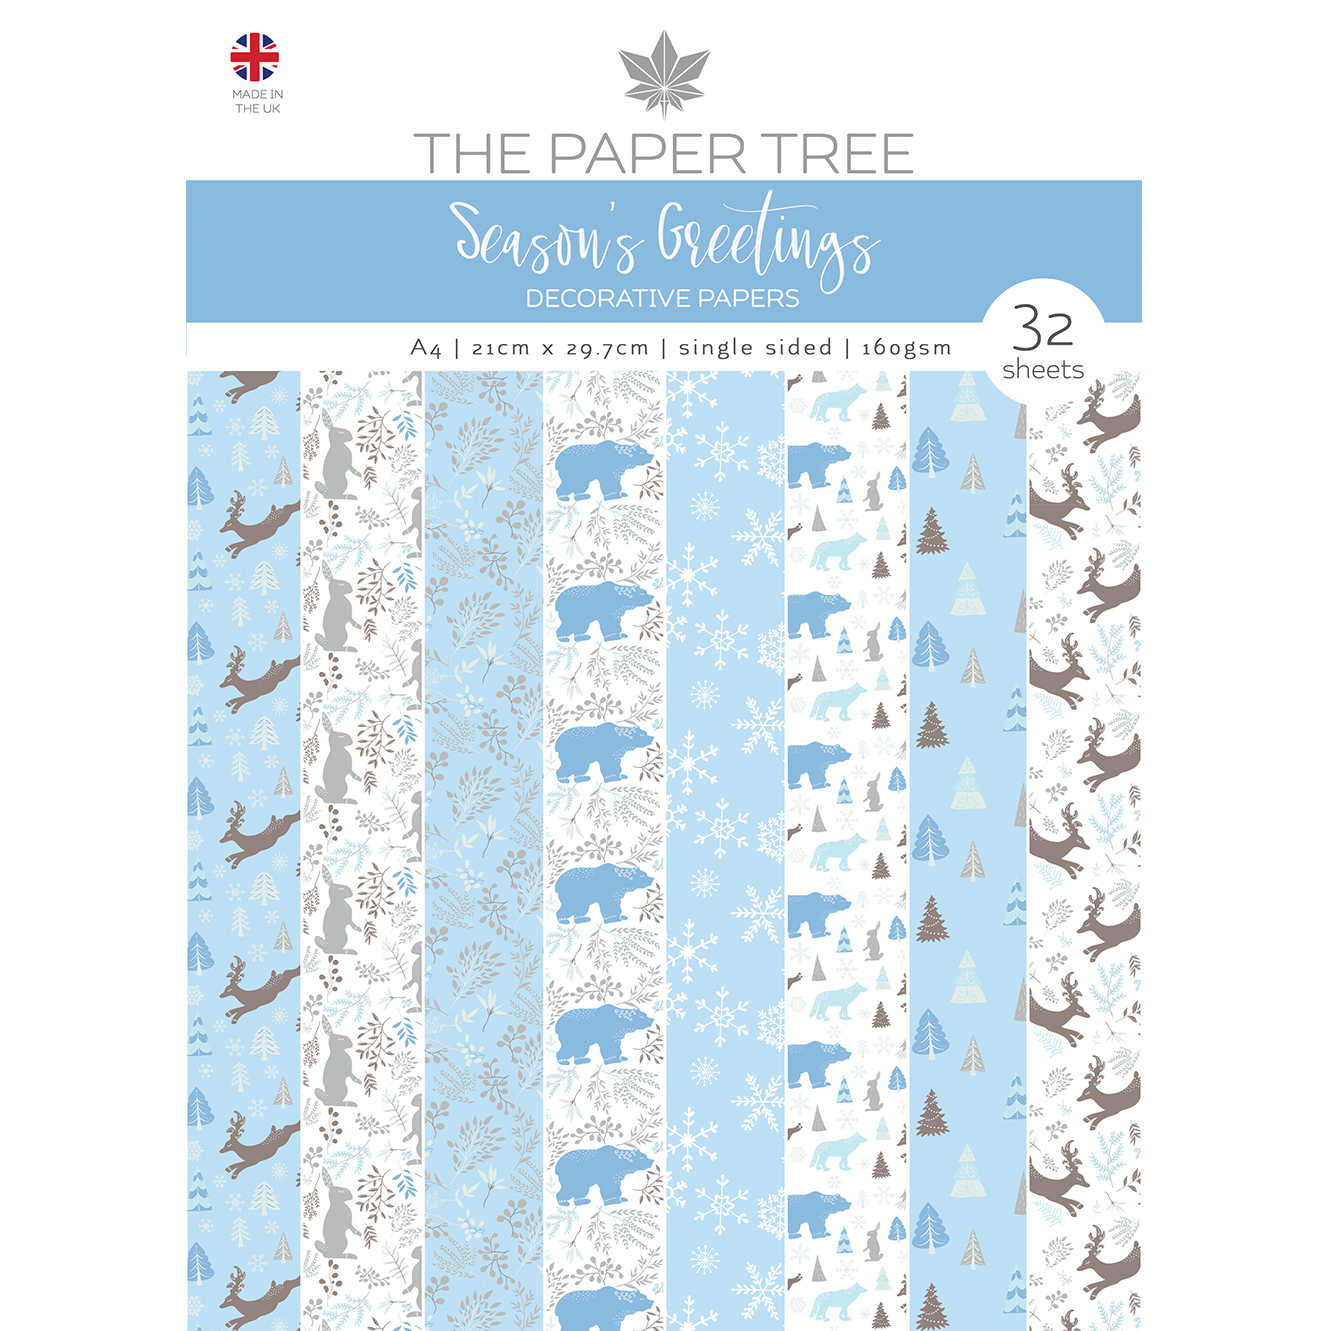 The Paper Tree Season's Greetings A4 Decorative Papers